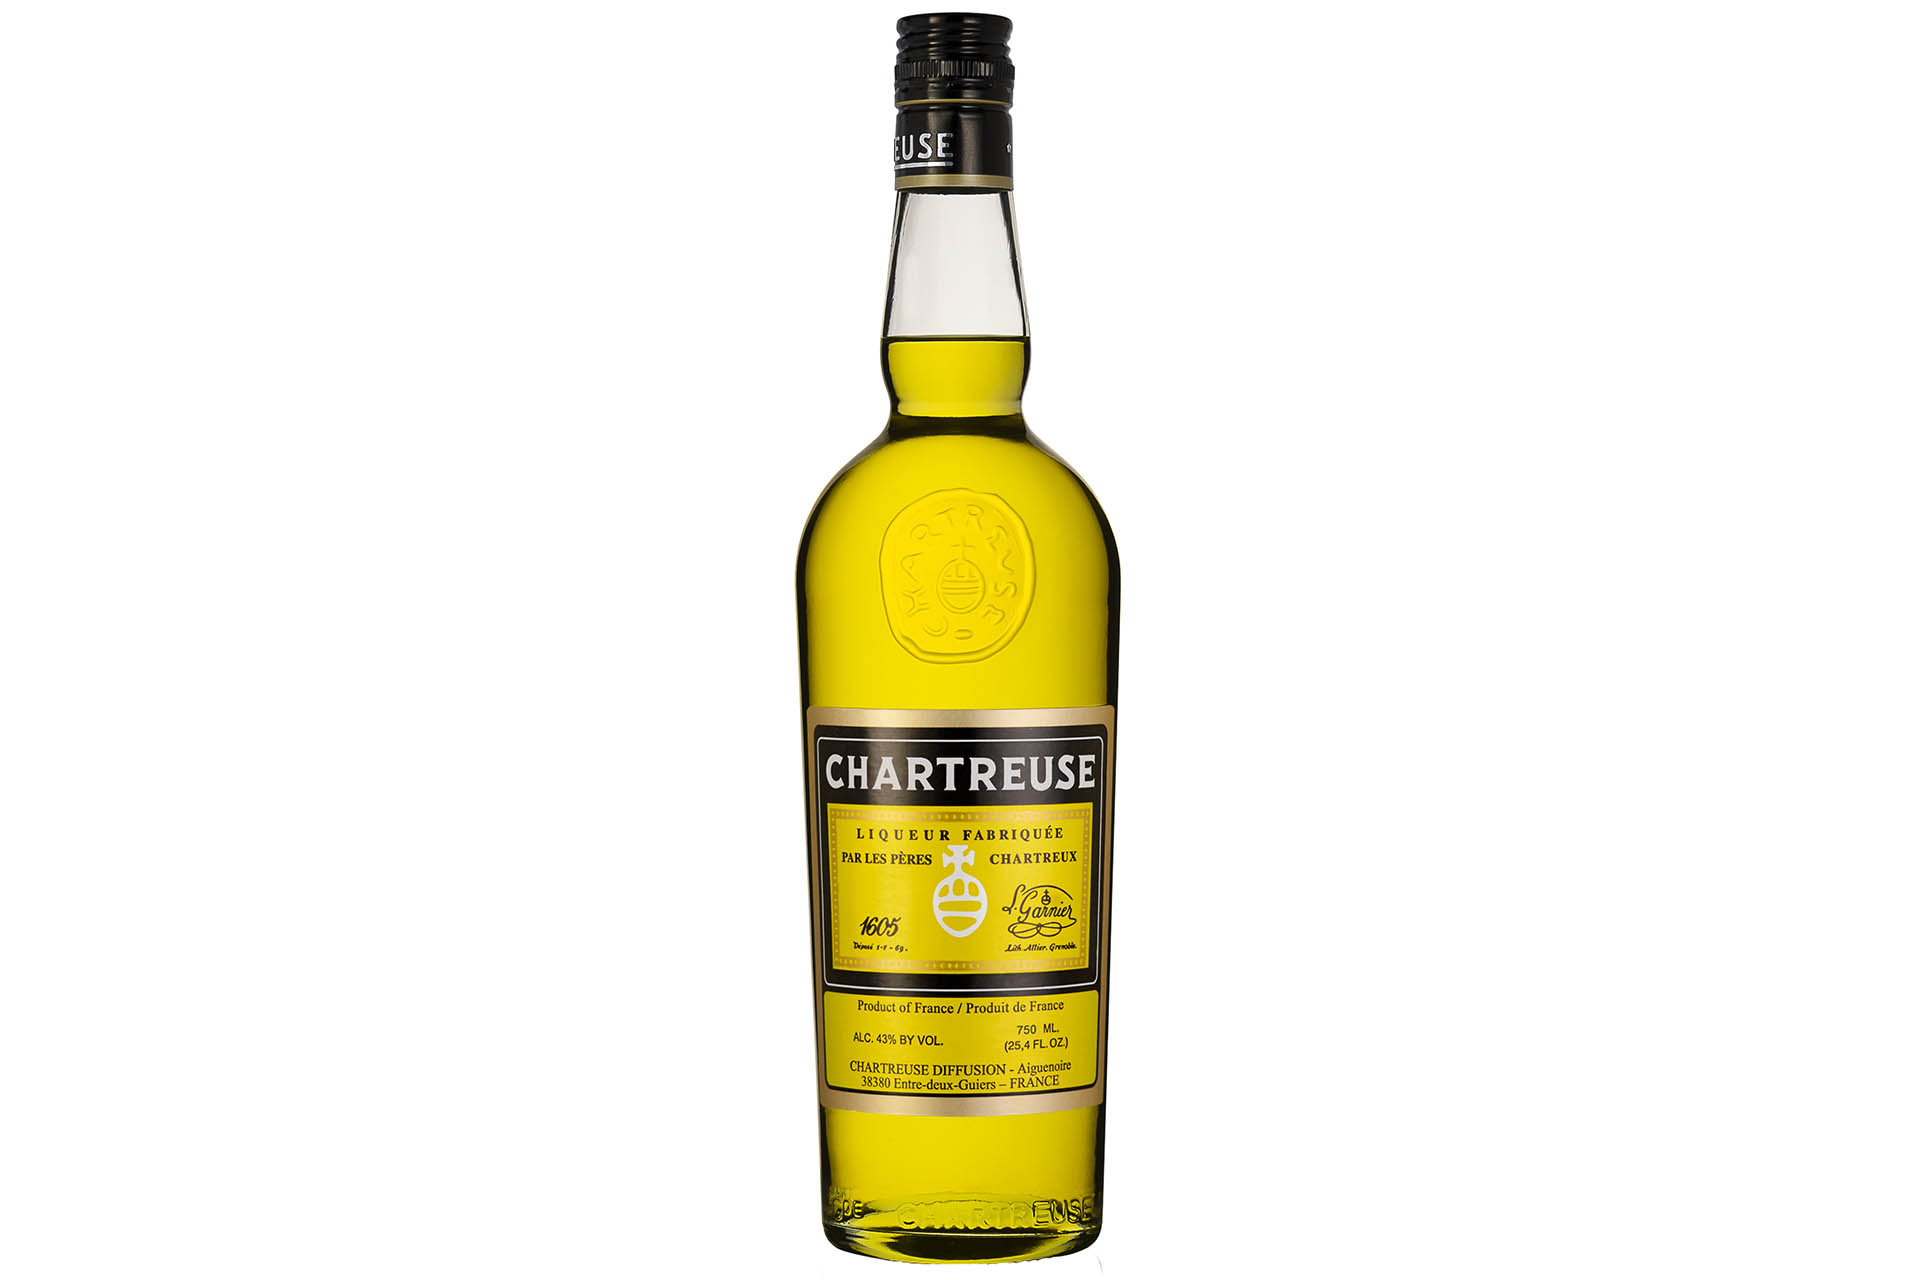 A bottle of yellow Chartreuse